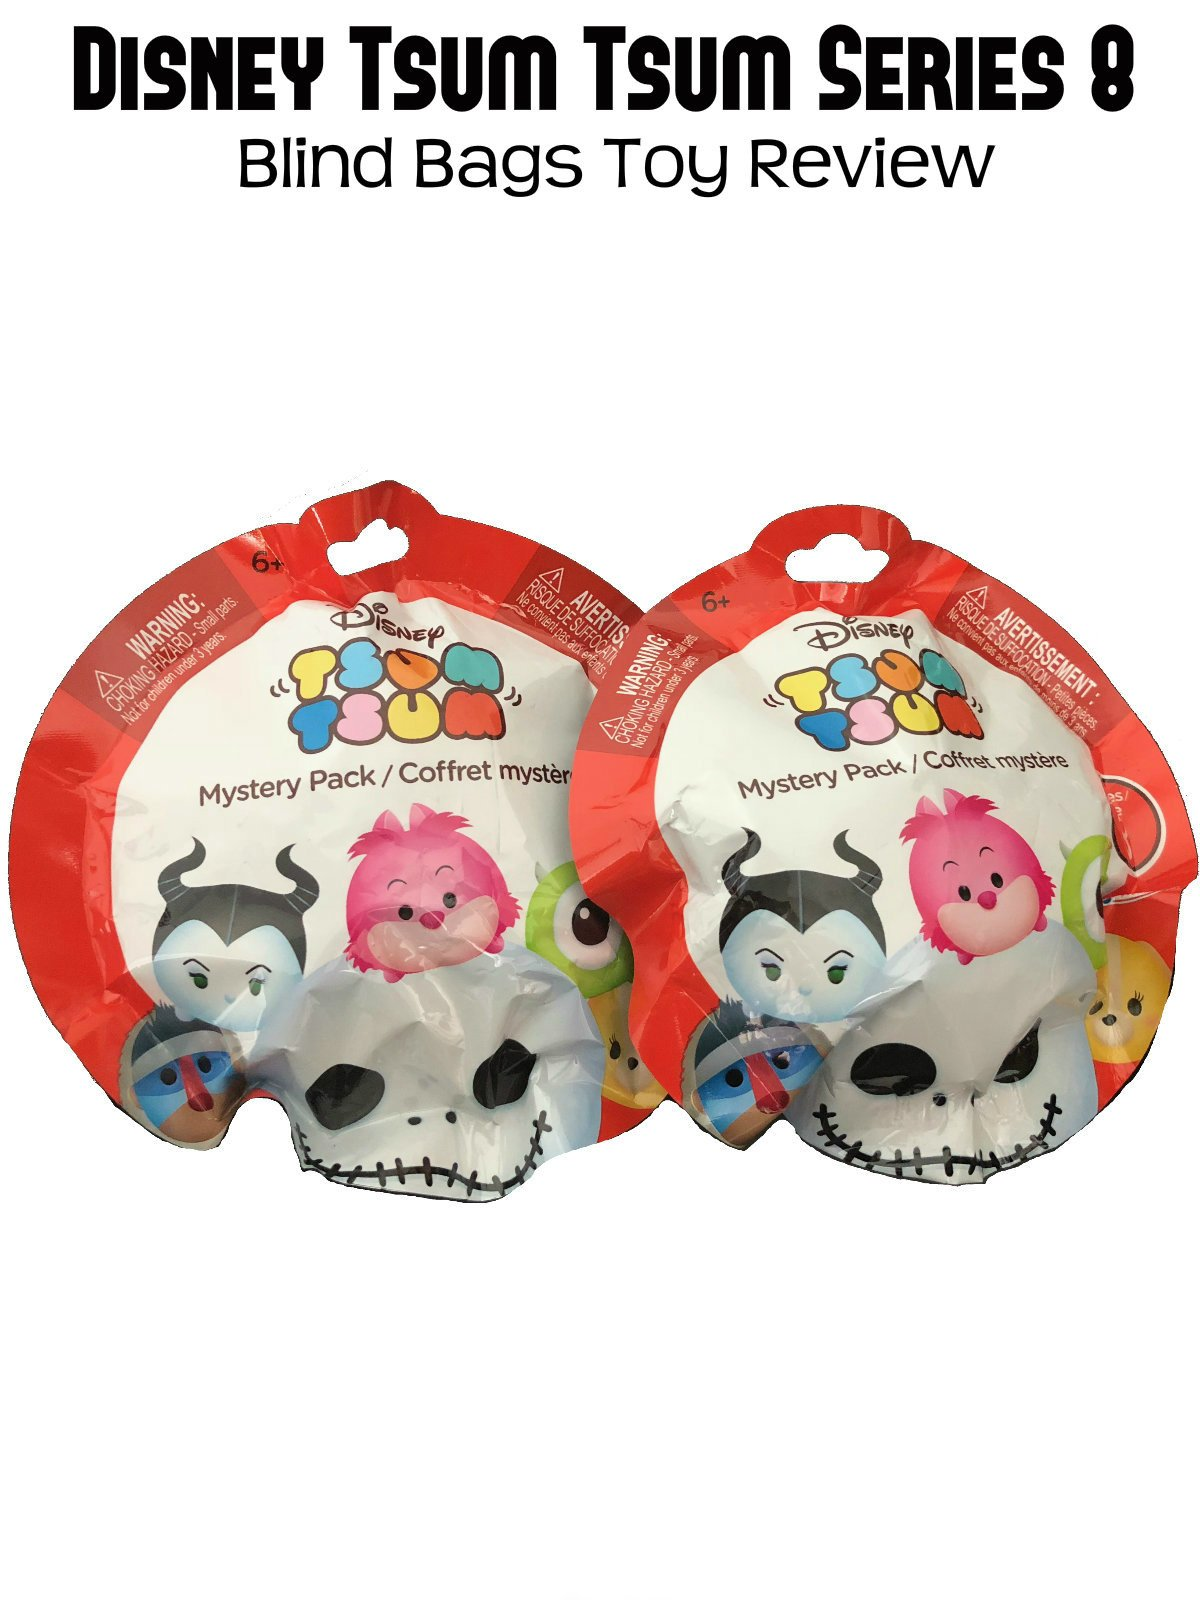 Review: Disney Tsum Tsum Series 8 Blind Bags Toy Review